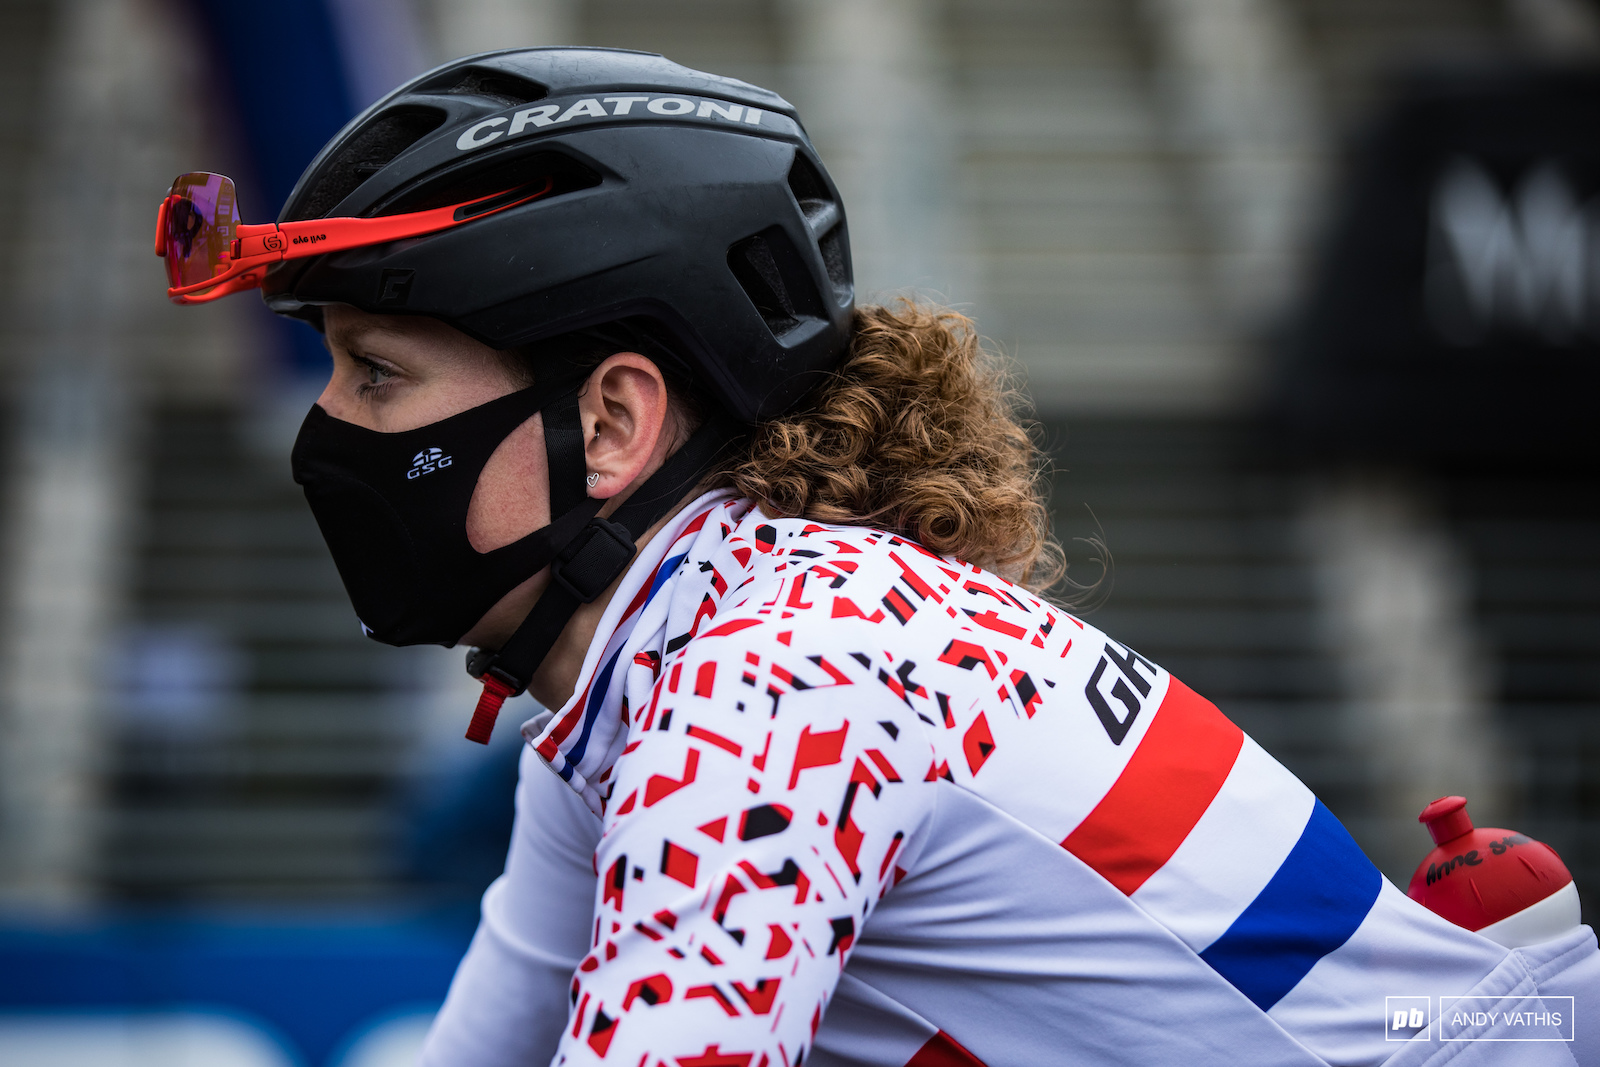 A big race for Anne Terpstra is coming right up.